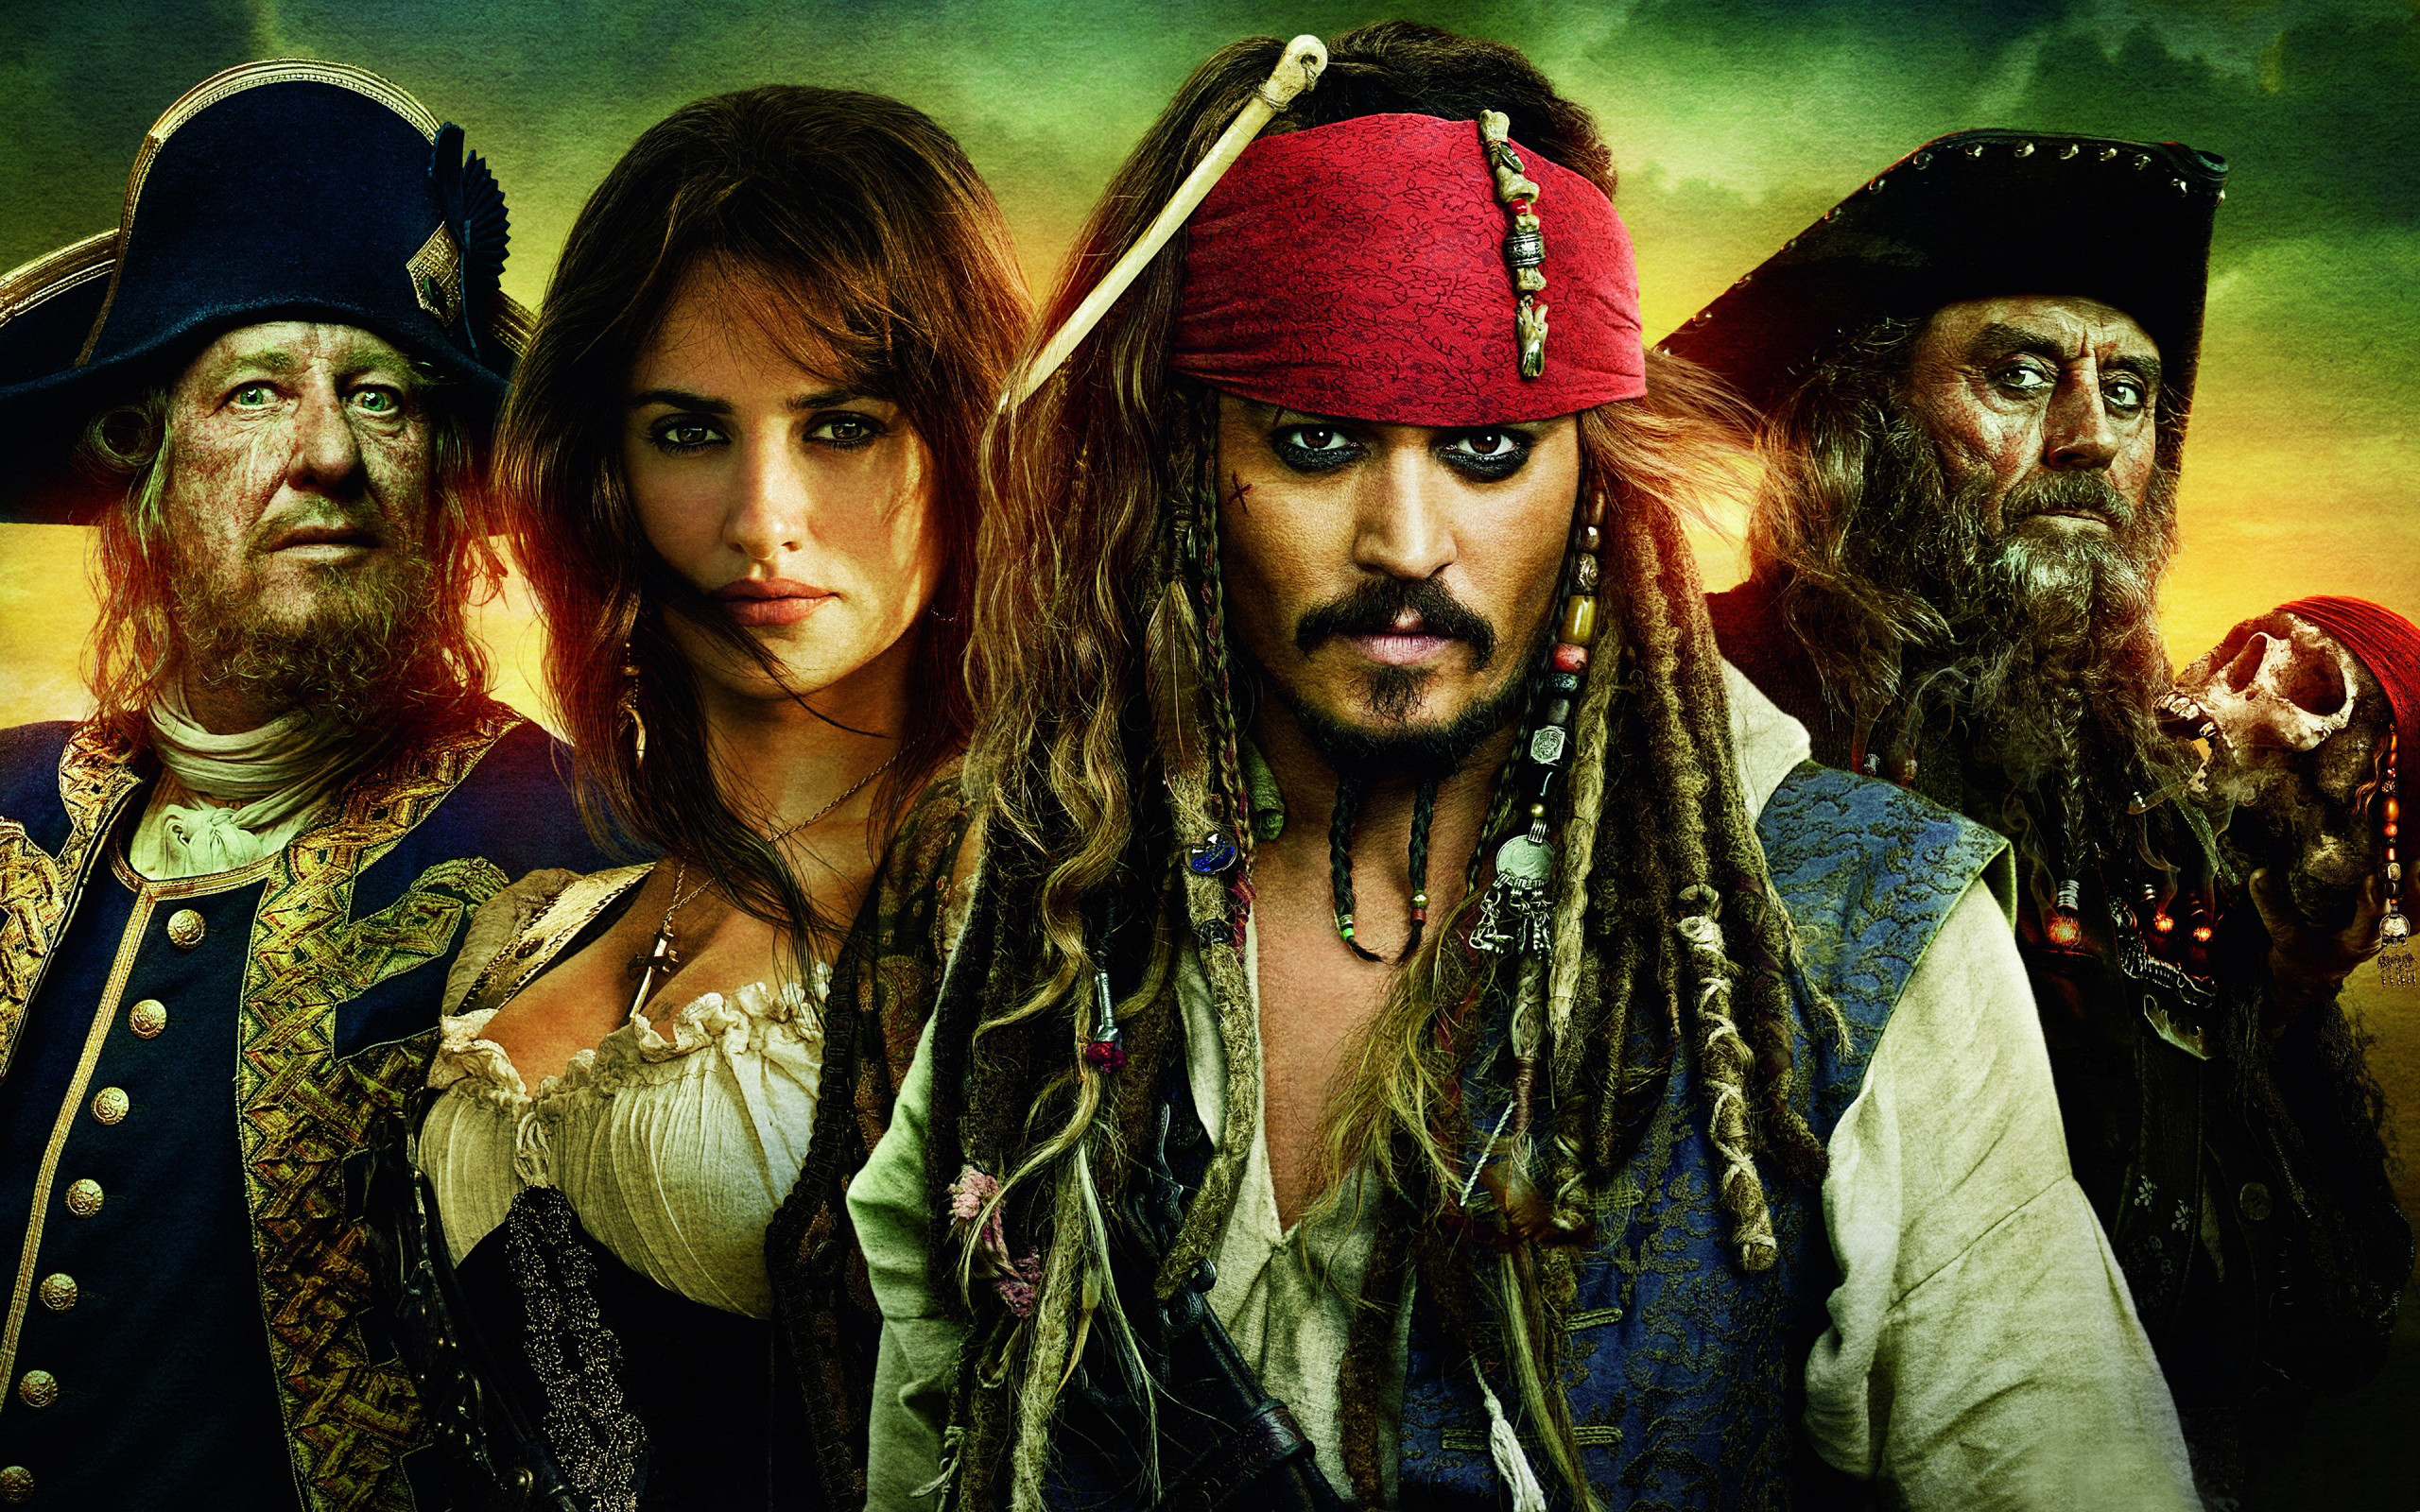 2560x1600 Pirates Of The Caribbean Wallpaper Free #Dzk